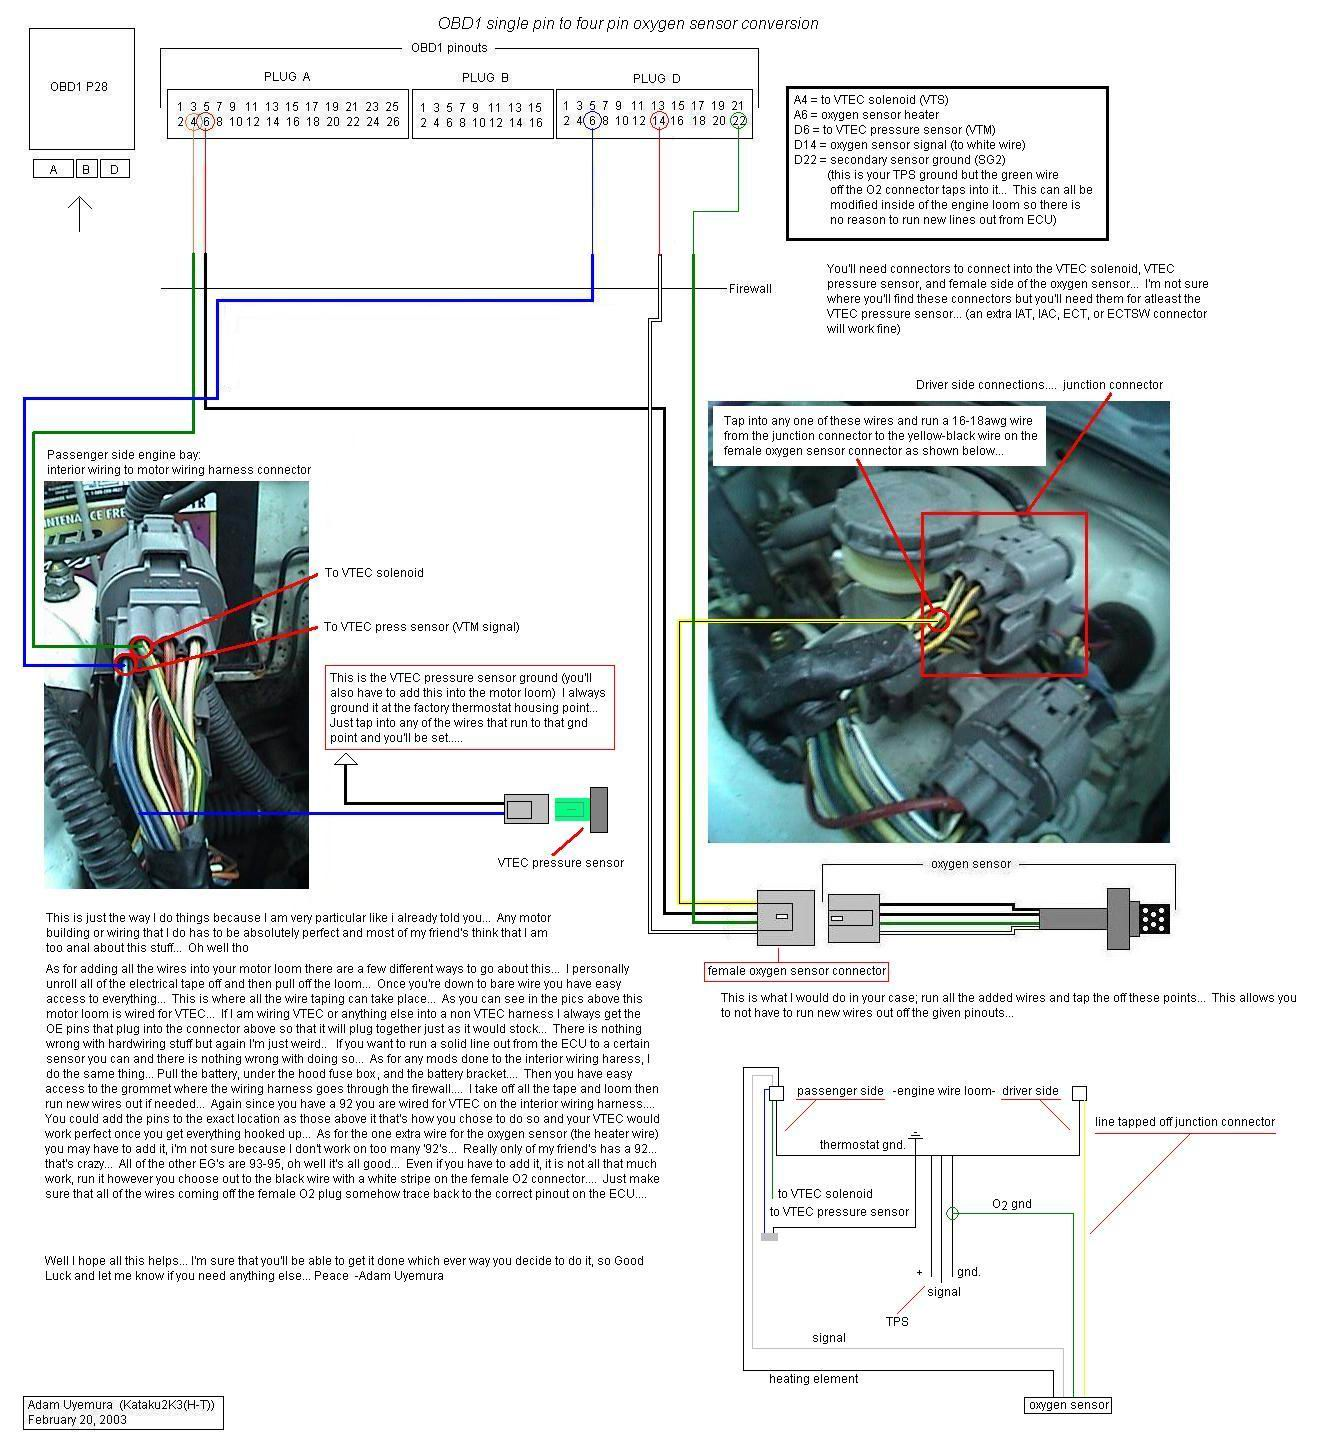 b18b 02 sensor wiring question honda tech honda forum discussion rh honda tech com 02 sensor wiring diagram 08 fxdf 02 sensor wiring diagram 08 fxdf